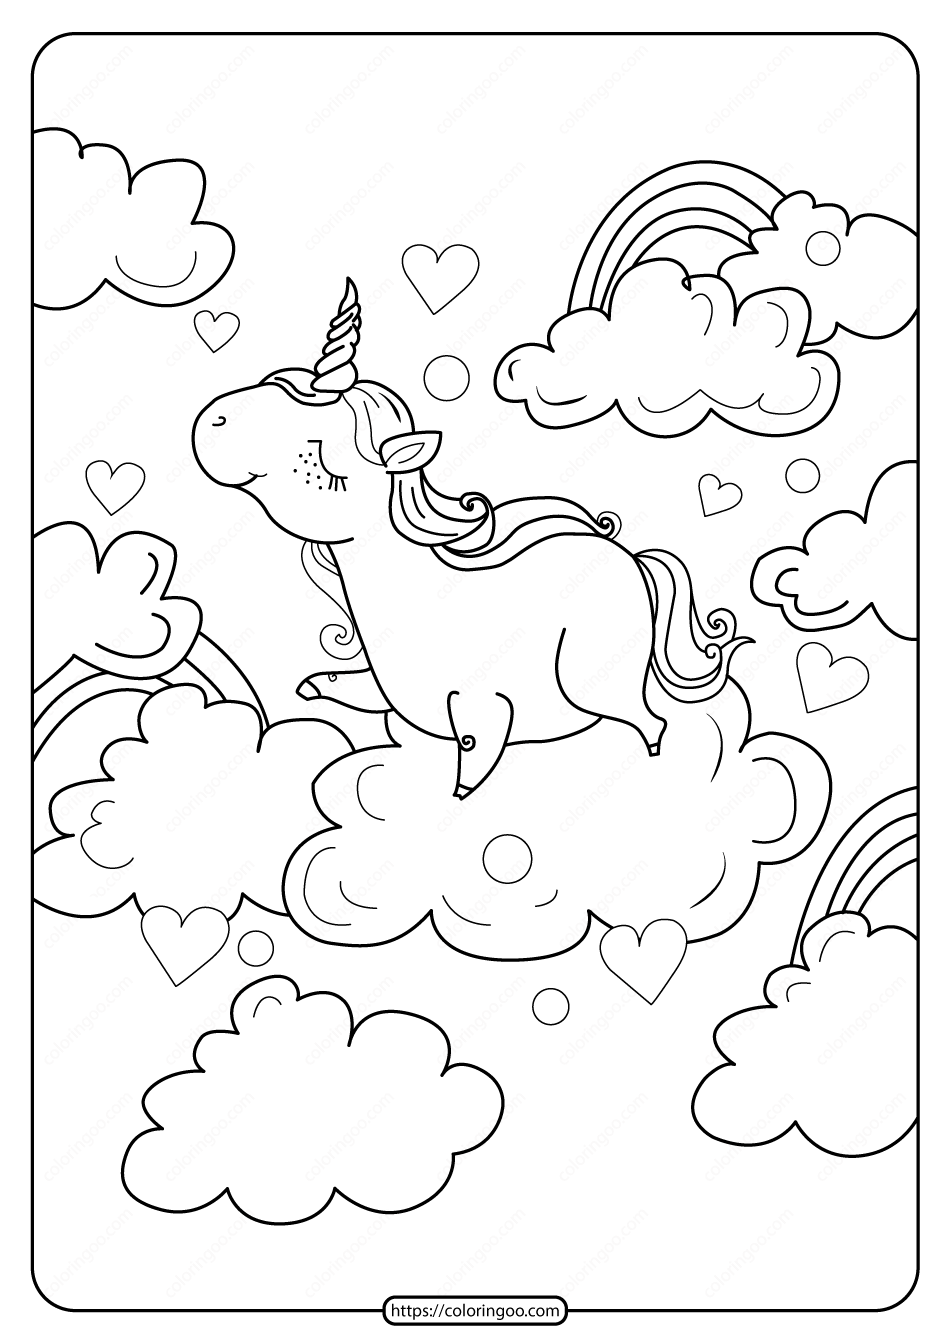 coloring sheet unicorn coloring pictures to print baby unicorns coloring pages coloring home pictures unicorn sheet coloring coloring to print